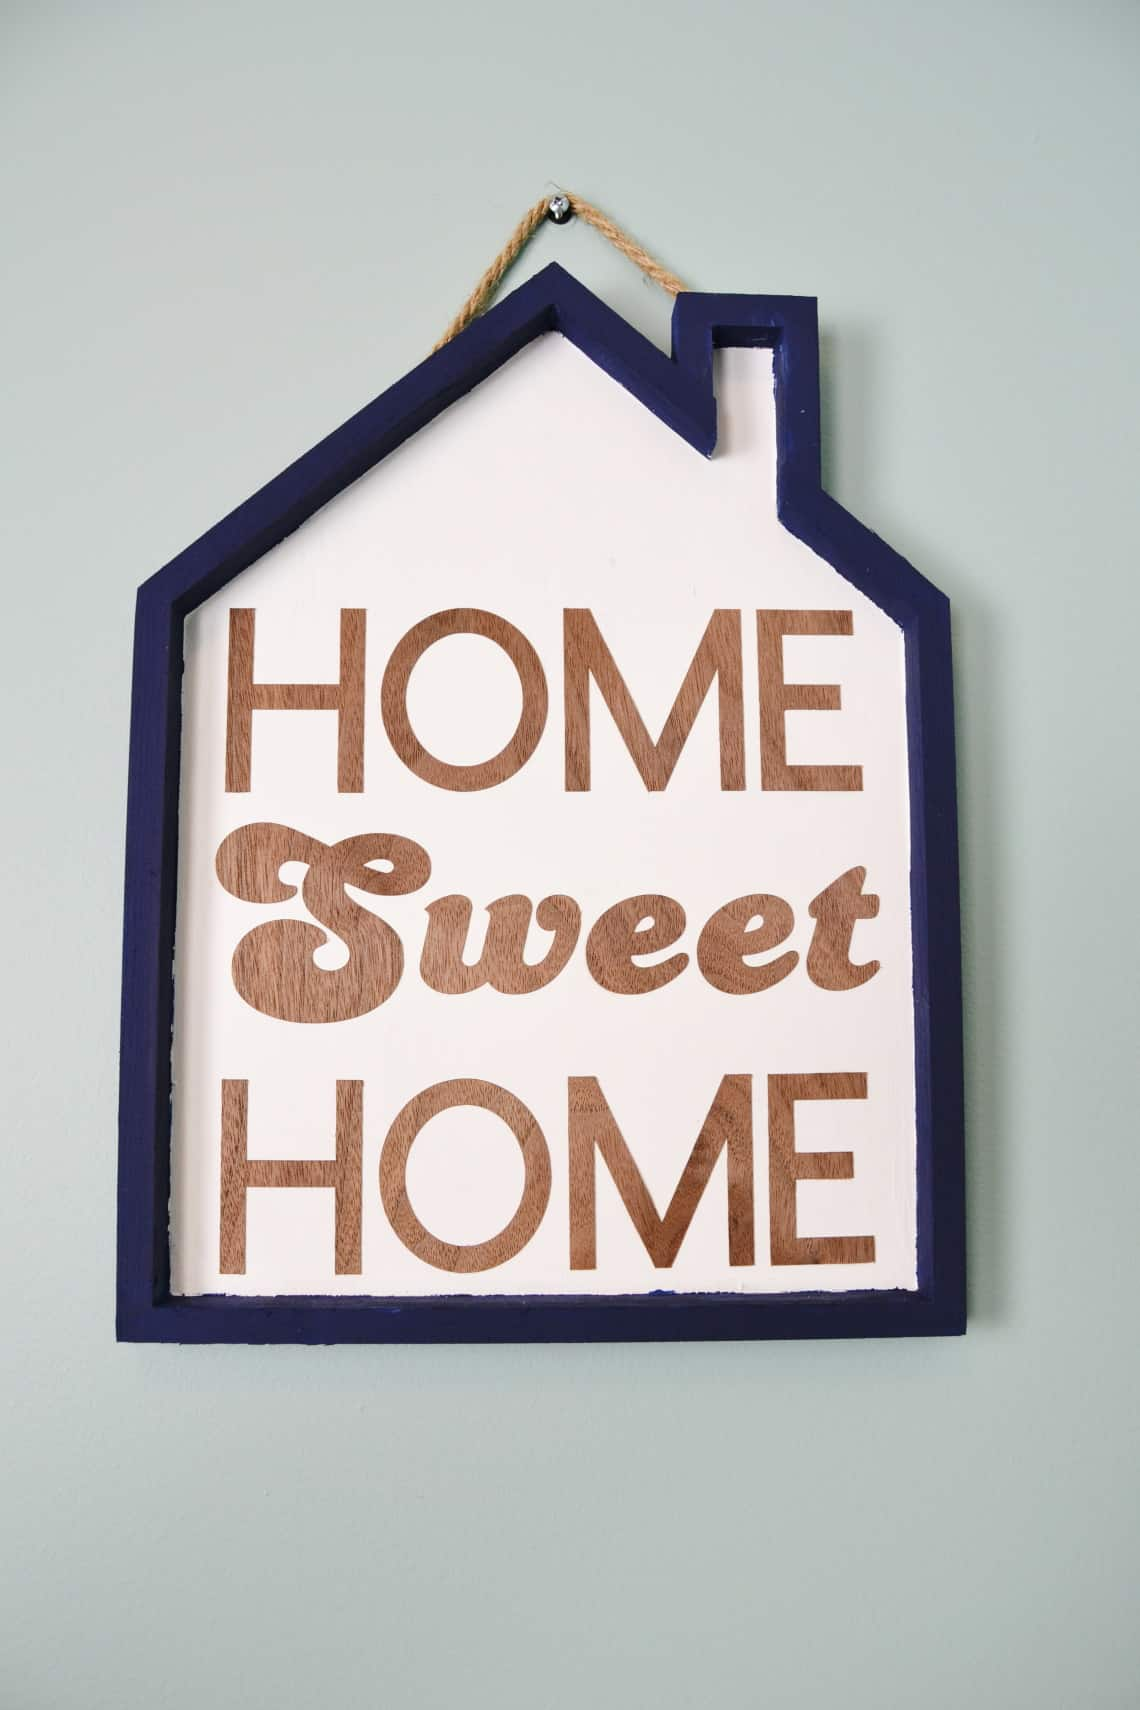 the finished home sweet home sign hanging on the wall